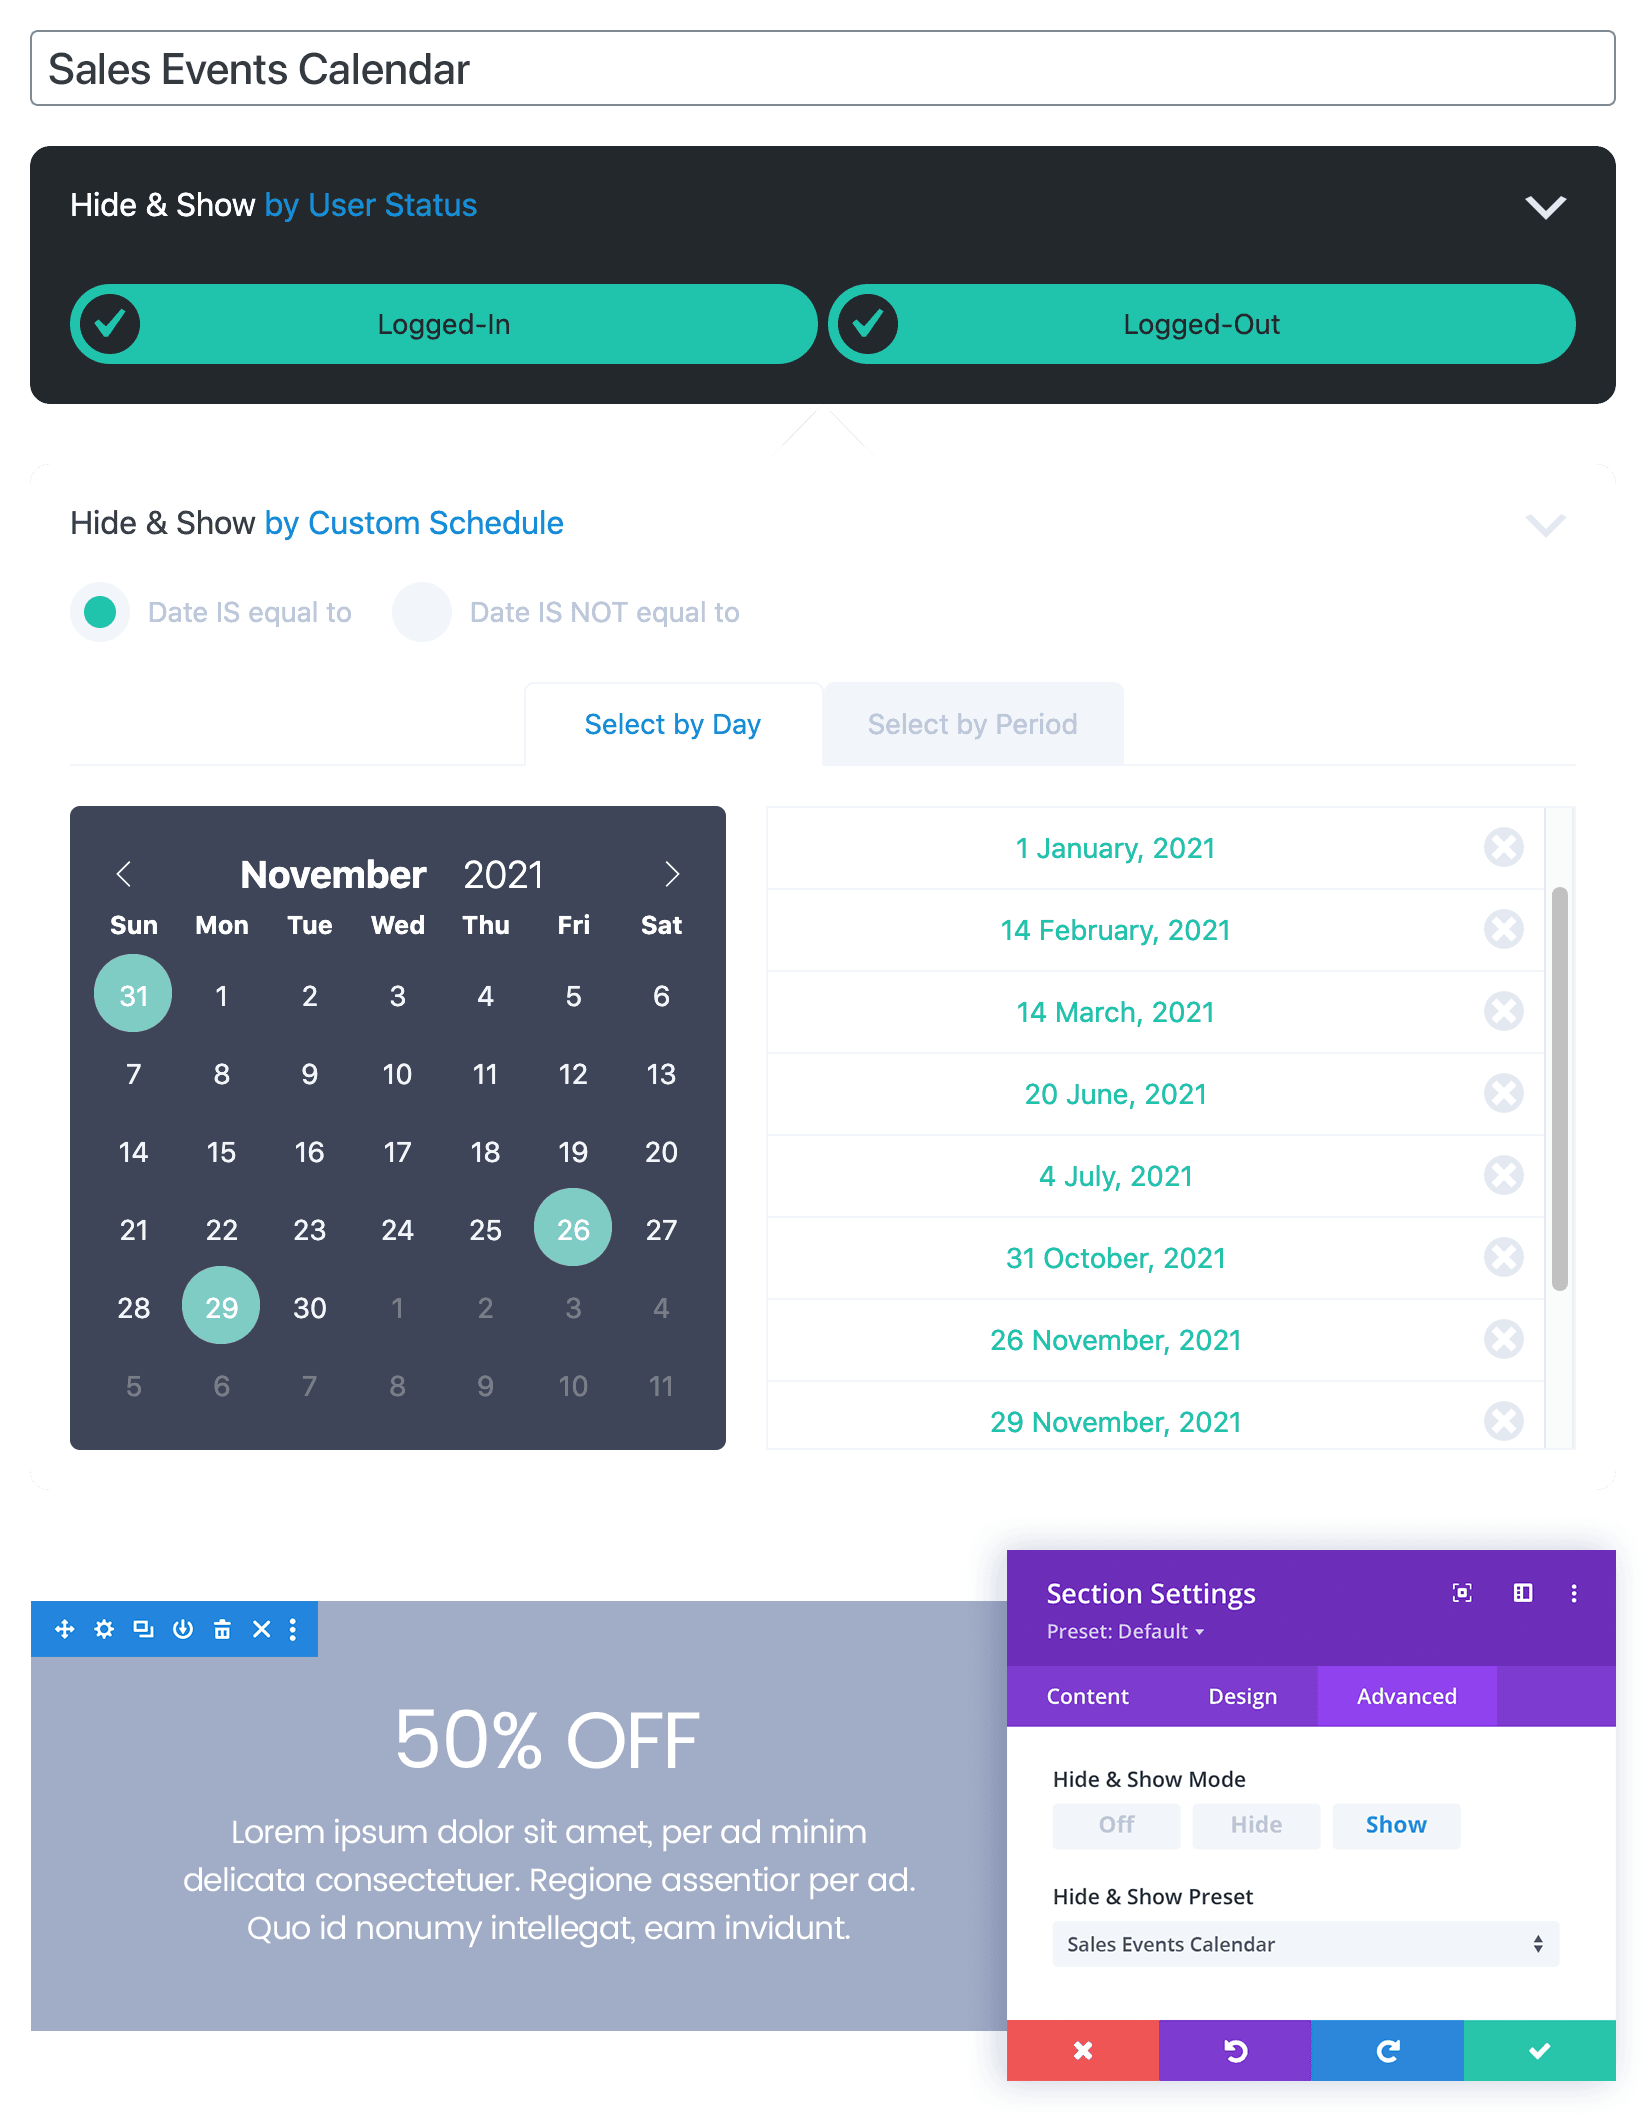 A Hide & Show PRO Annual Sales Events usage example